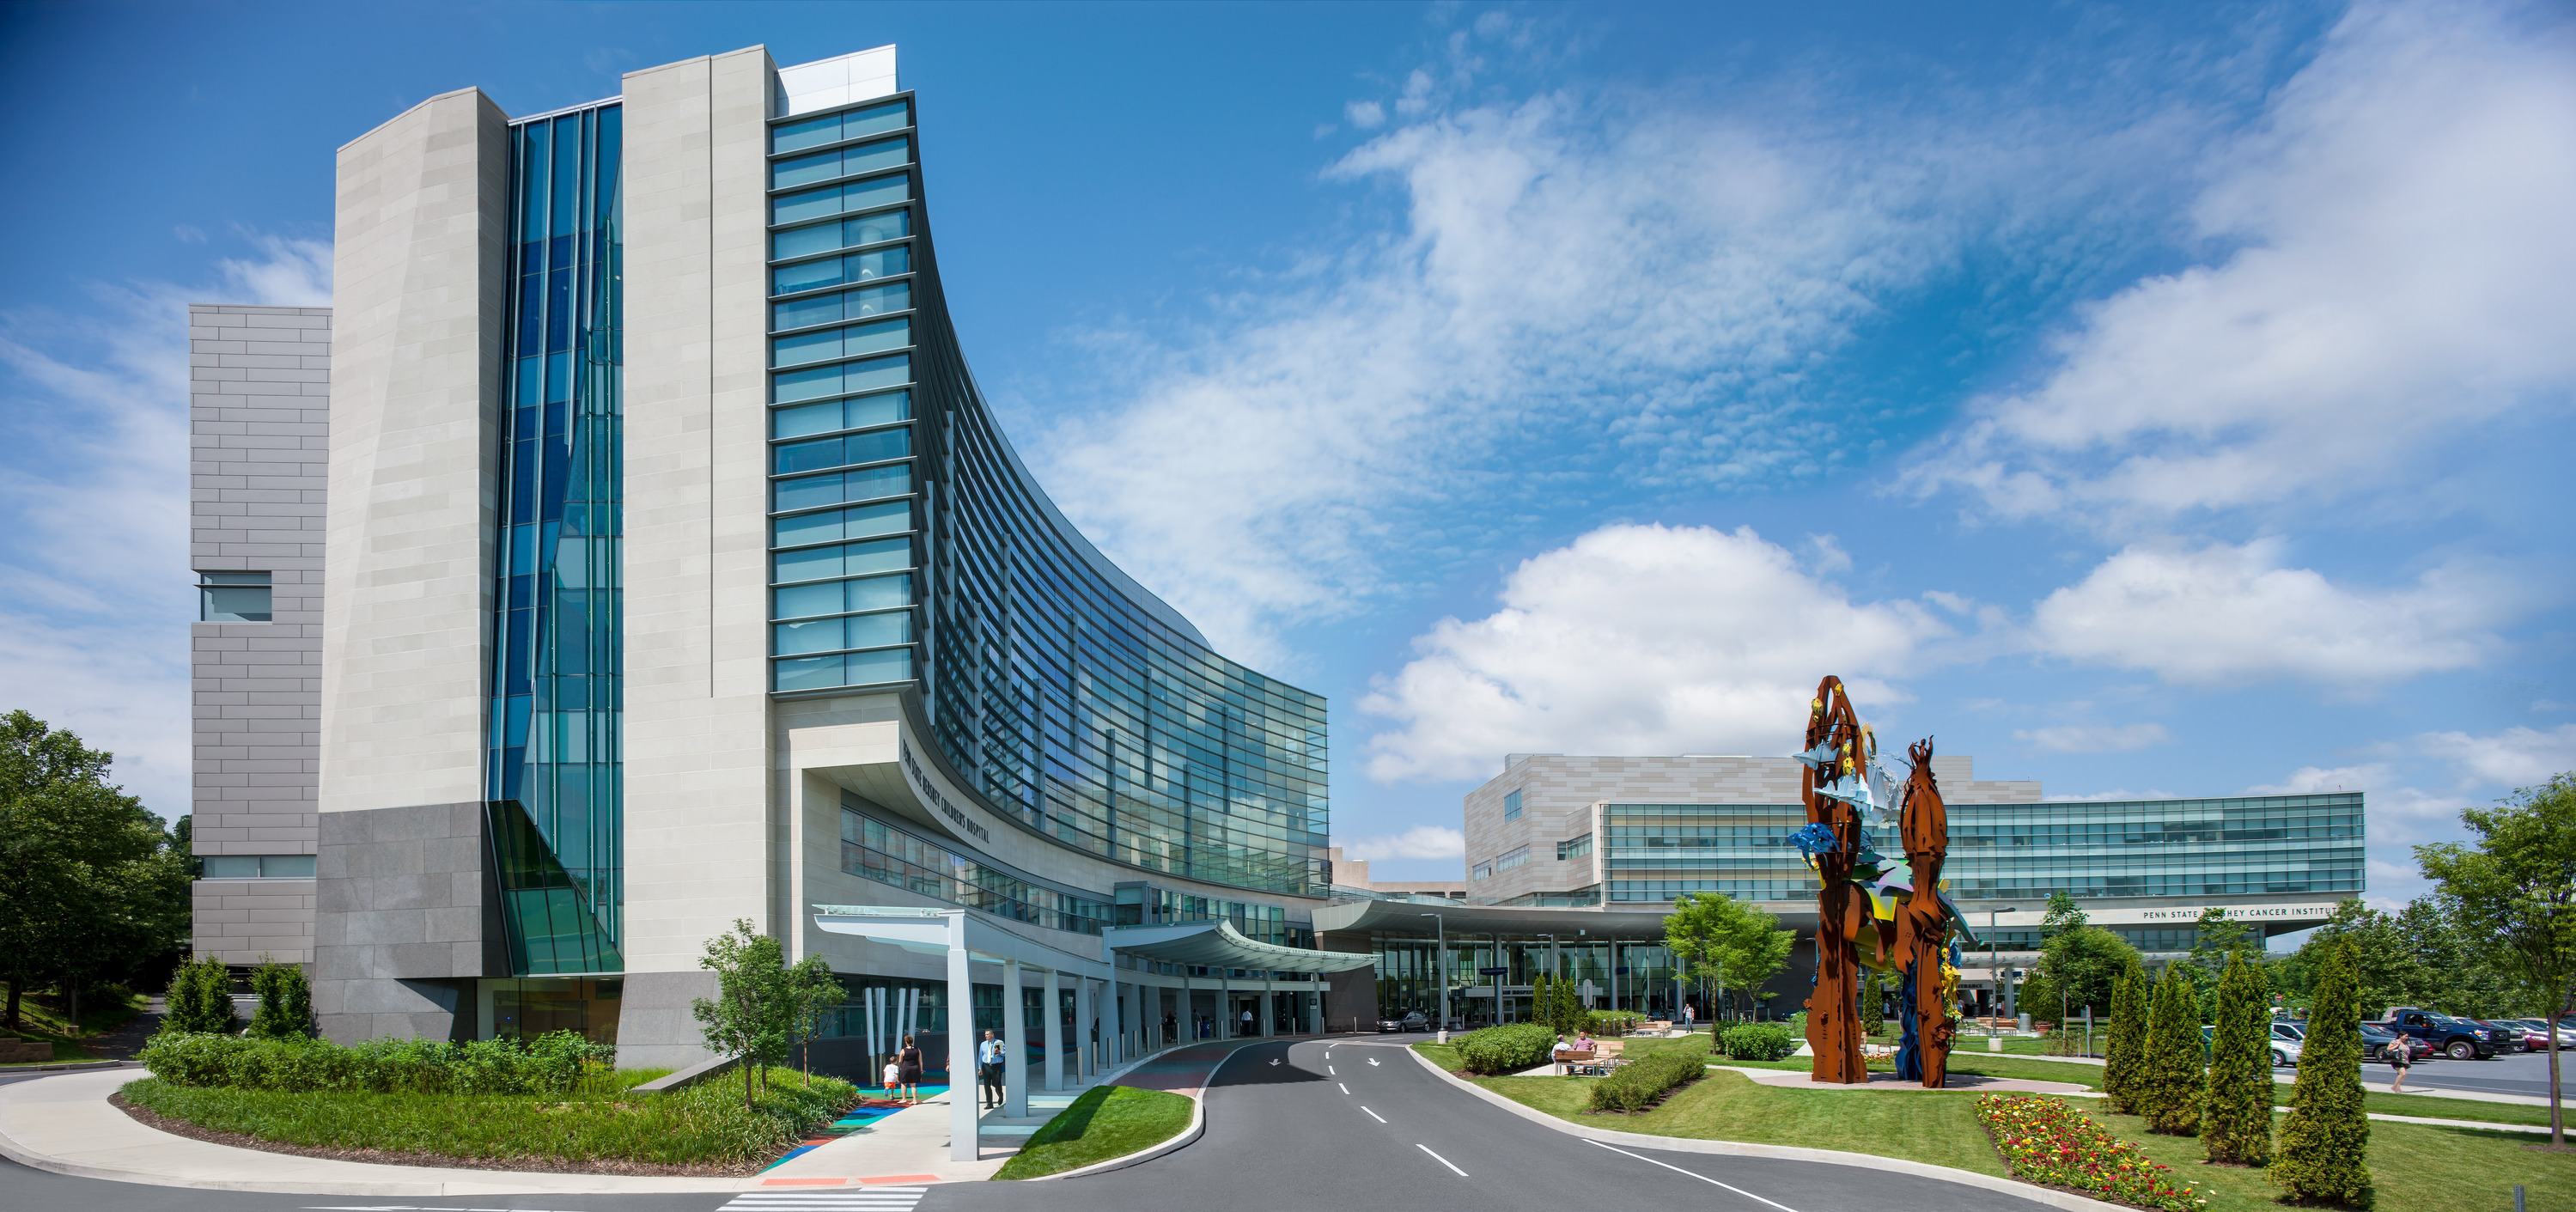 LEED-certified Penn State Hershey Cancer Institute